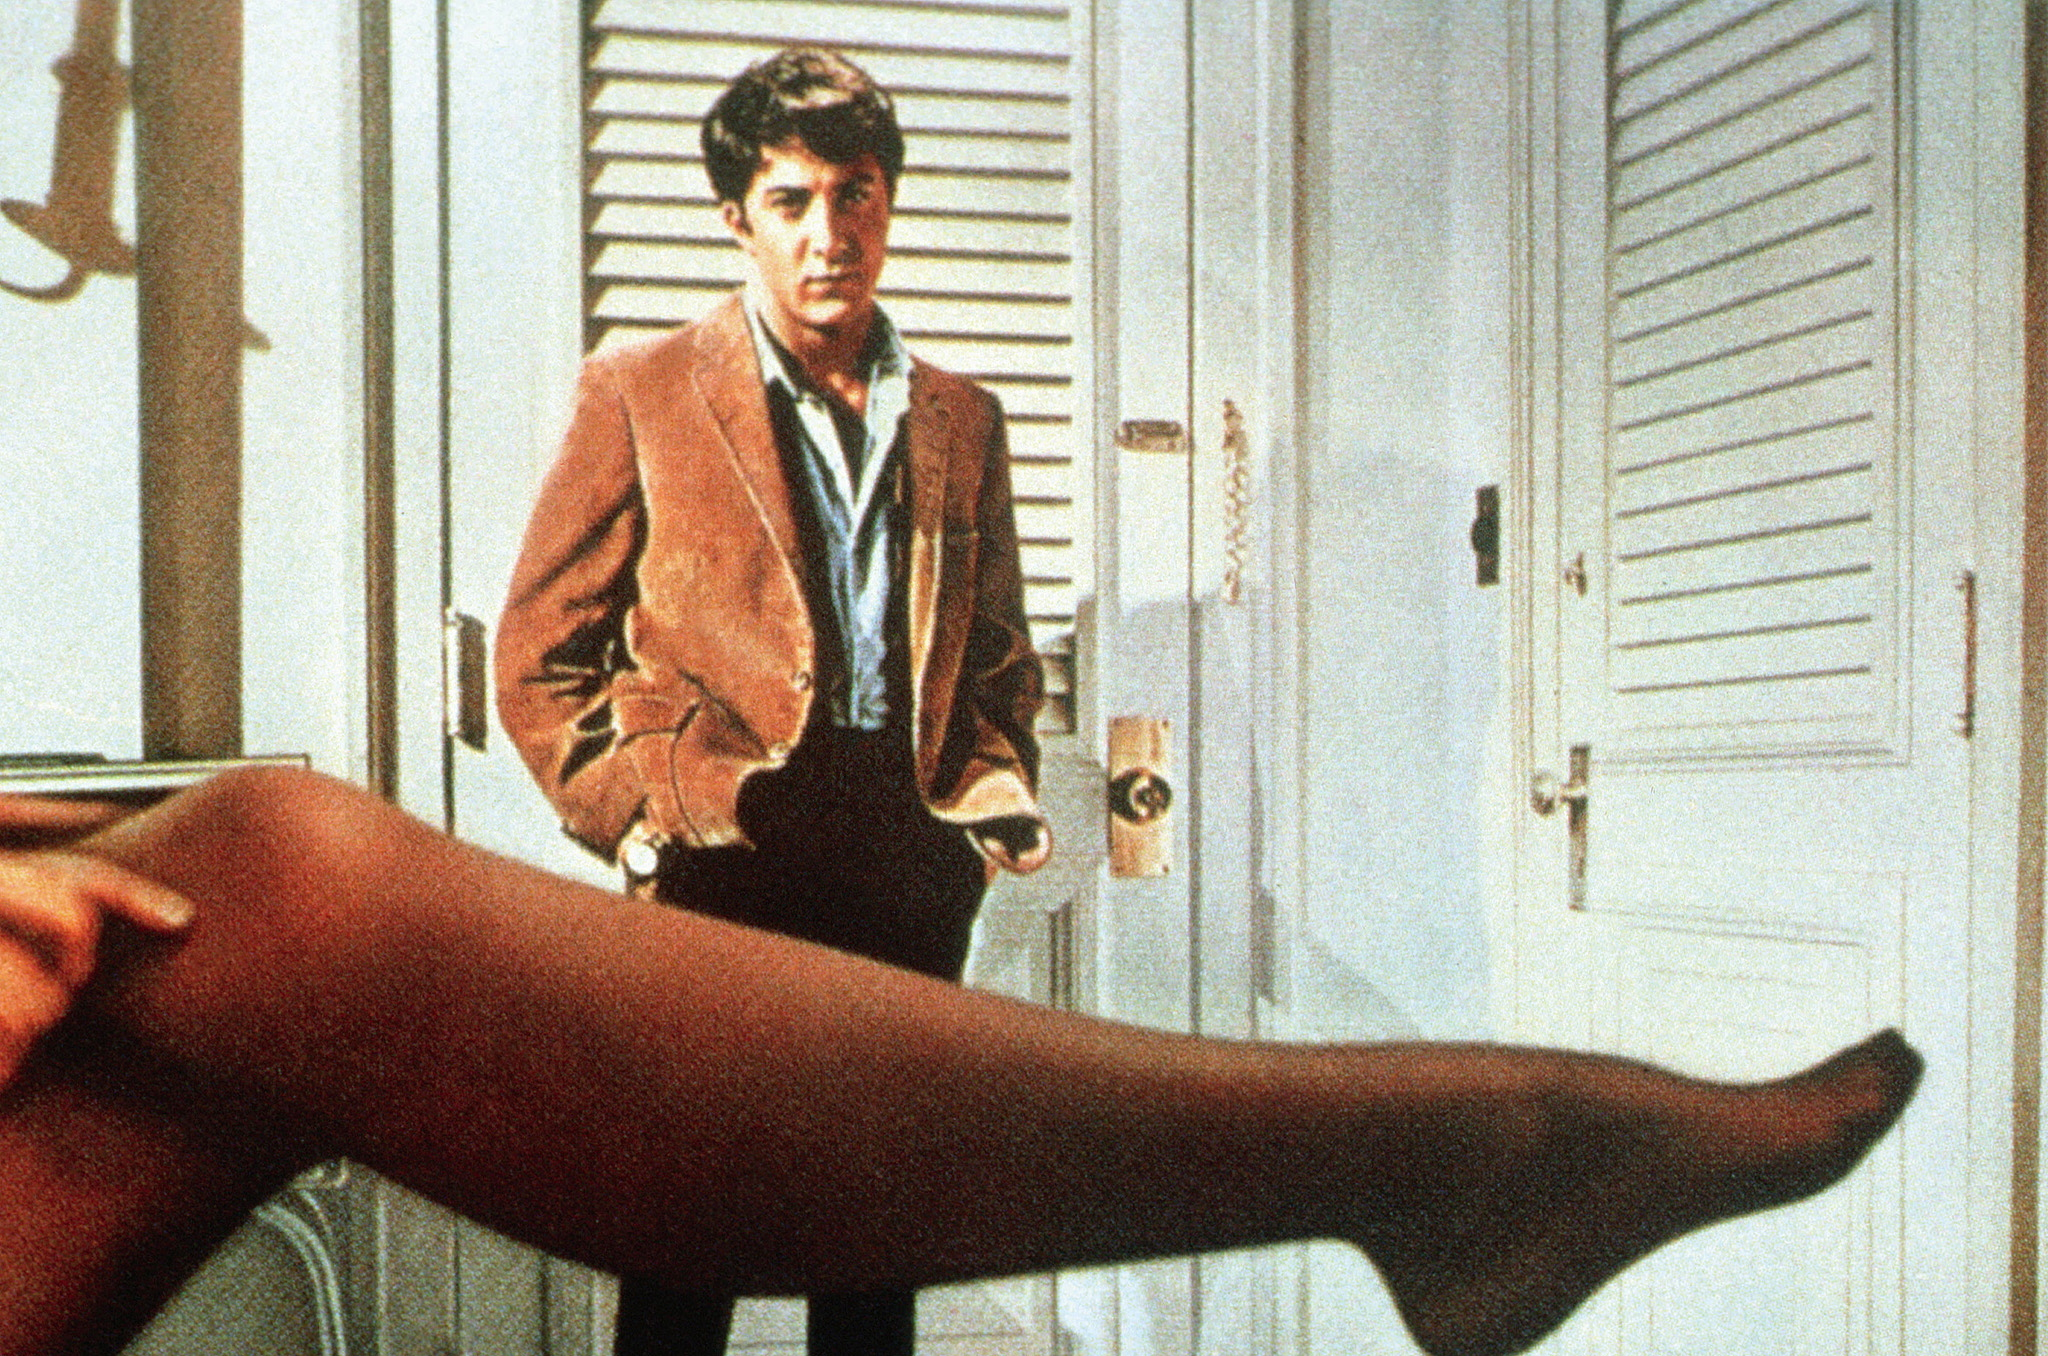 Romantic movie: The Graduate